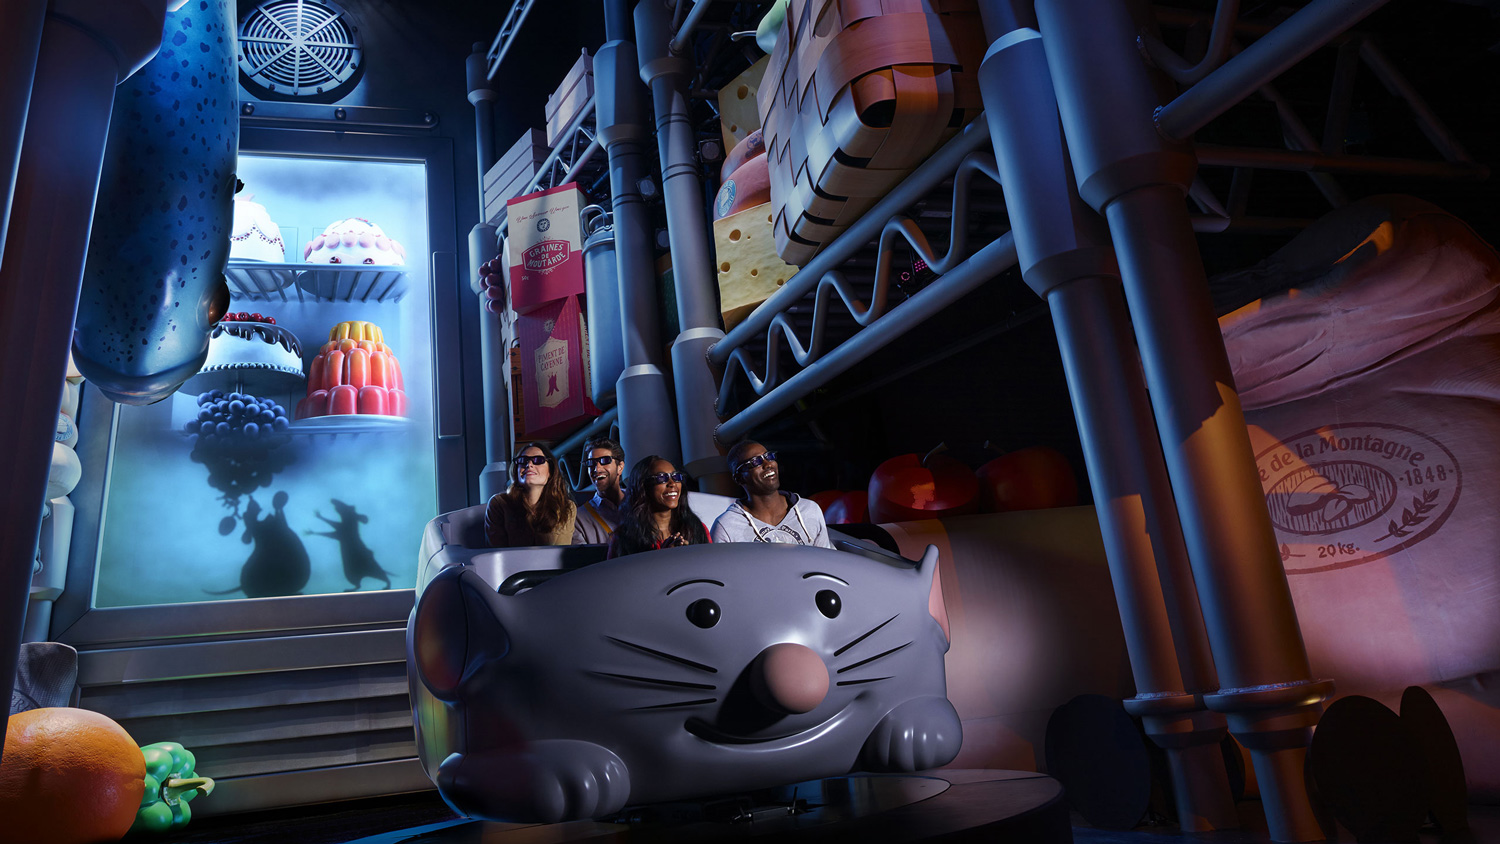 Ratatouille Attraction at Disneyland Paris